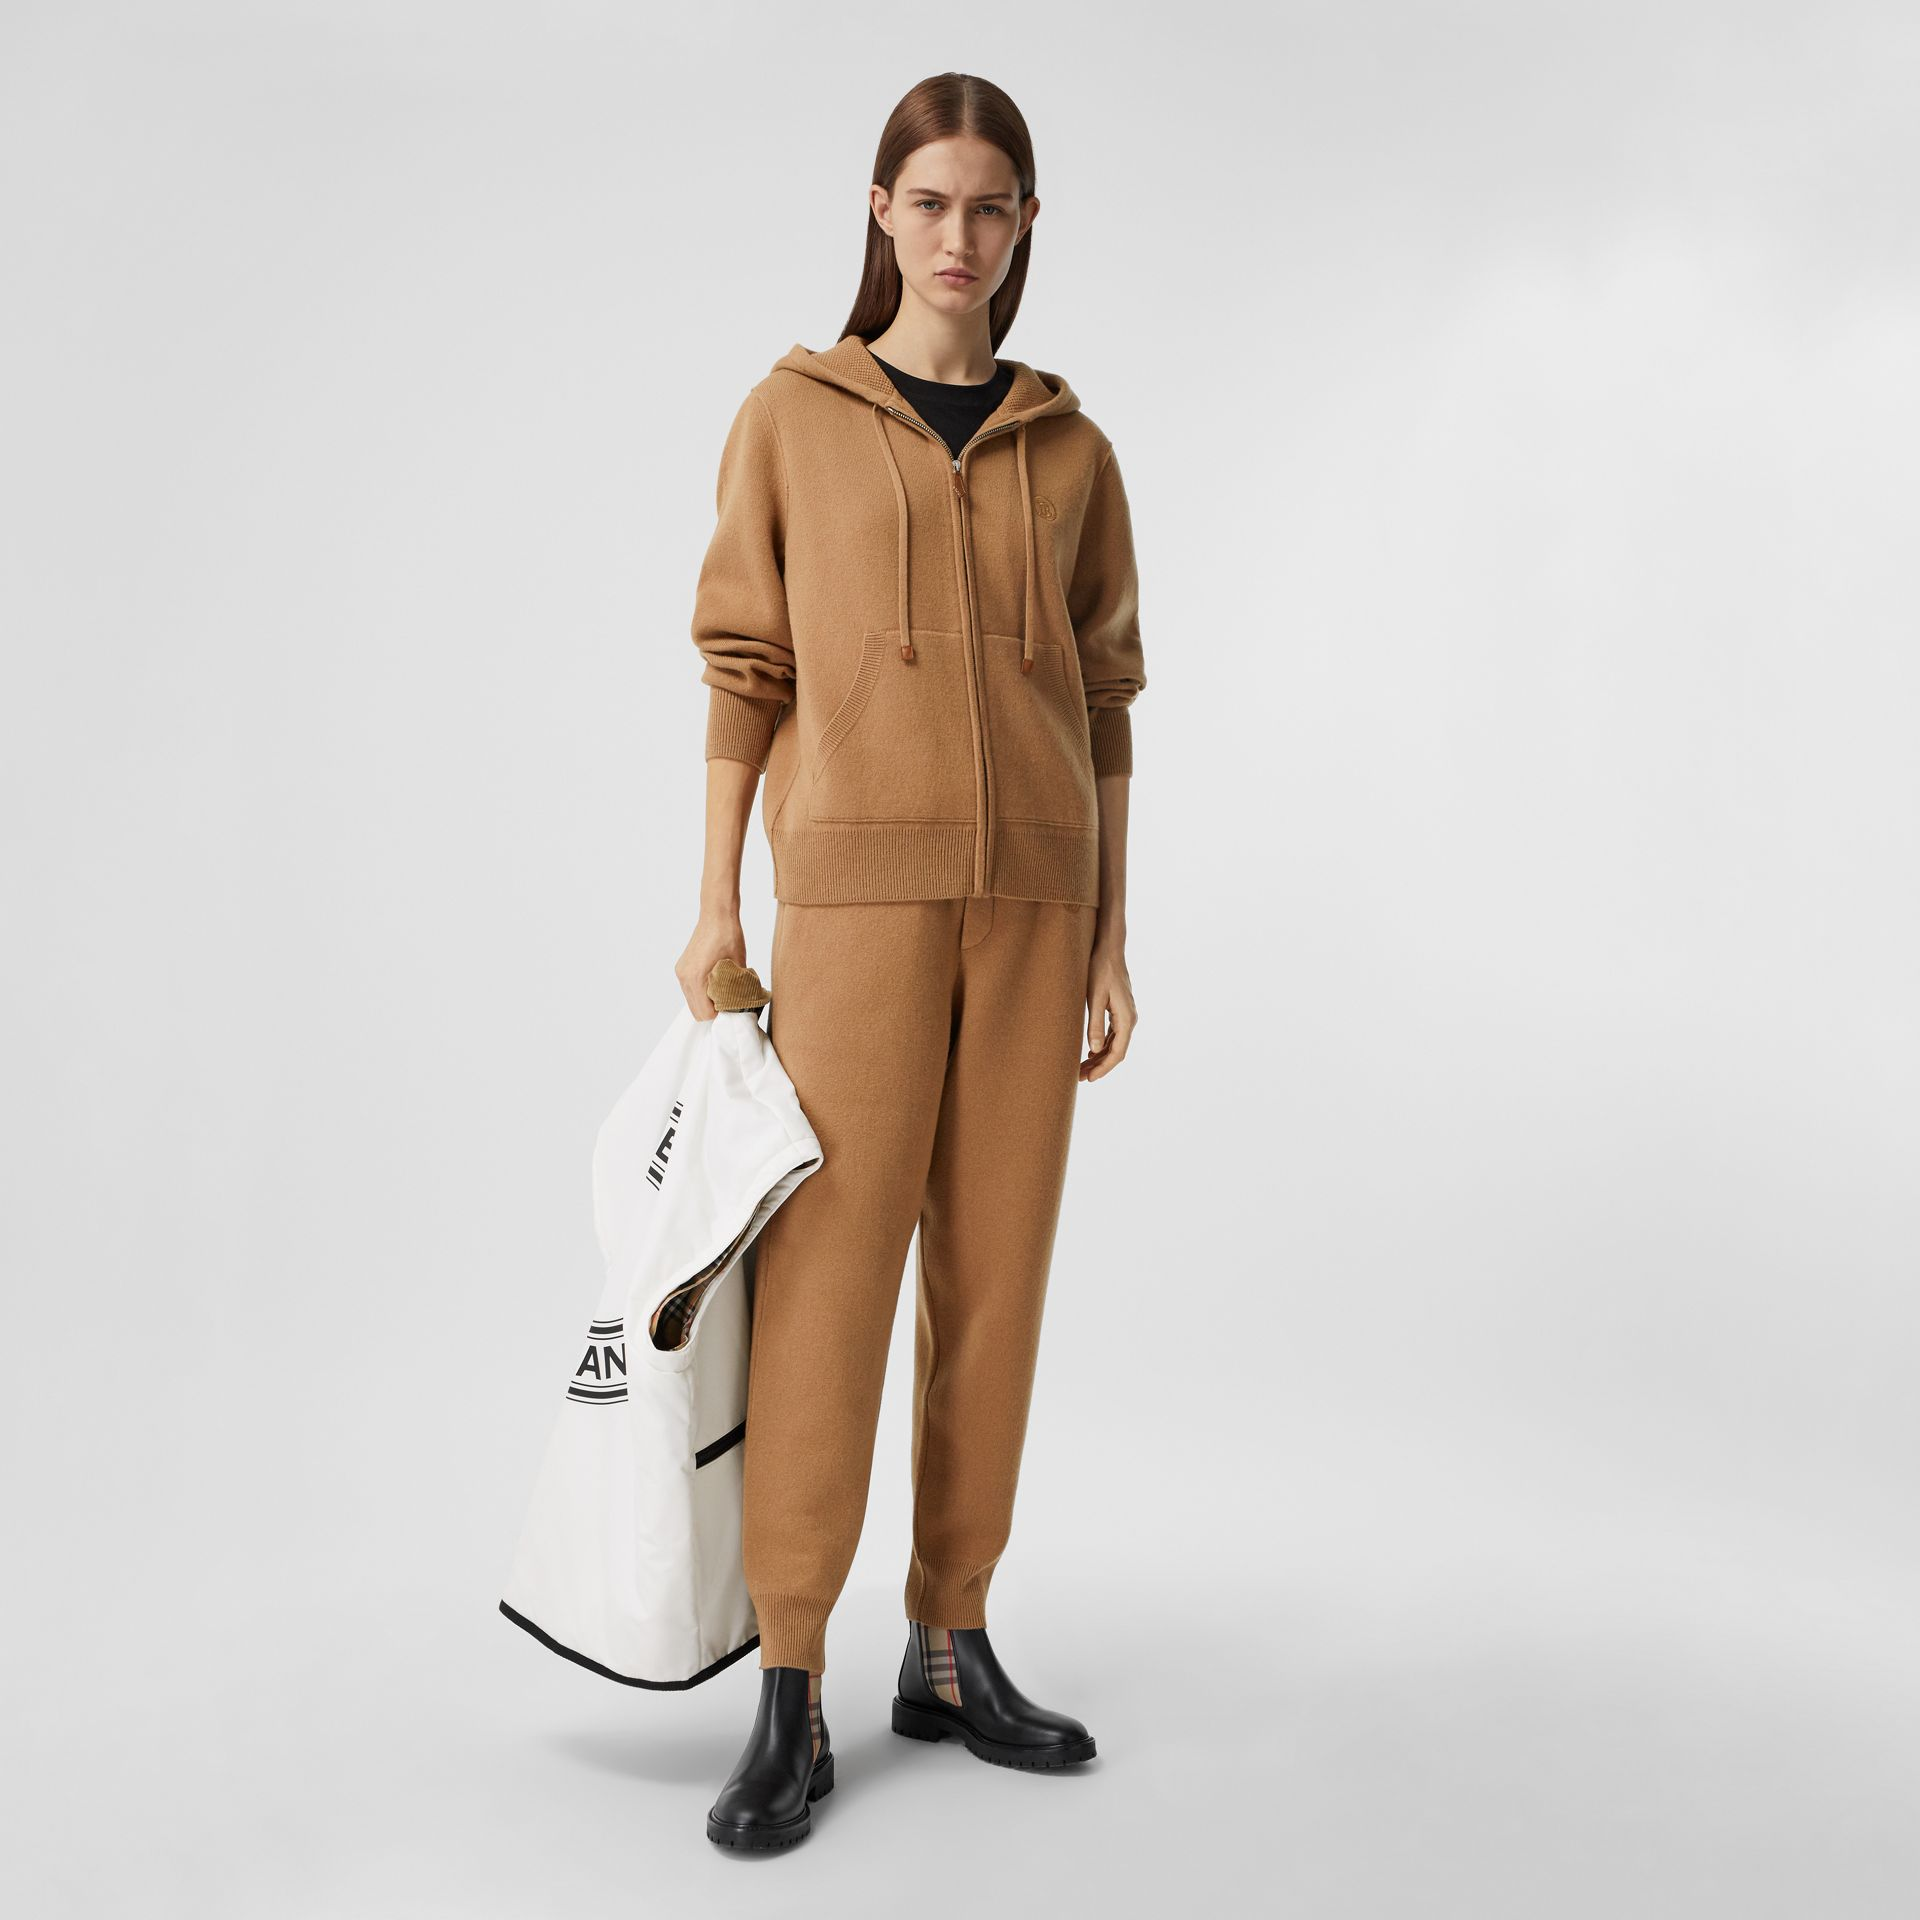 Monogram Motif Cashmere Blend Hooded Top in Camel - Women | Burberry - gallery image 0